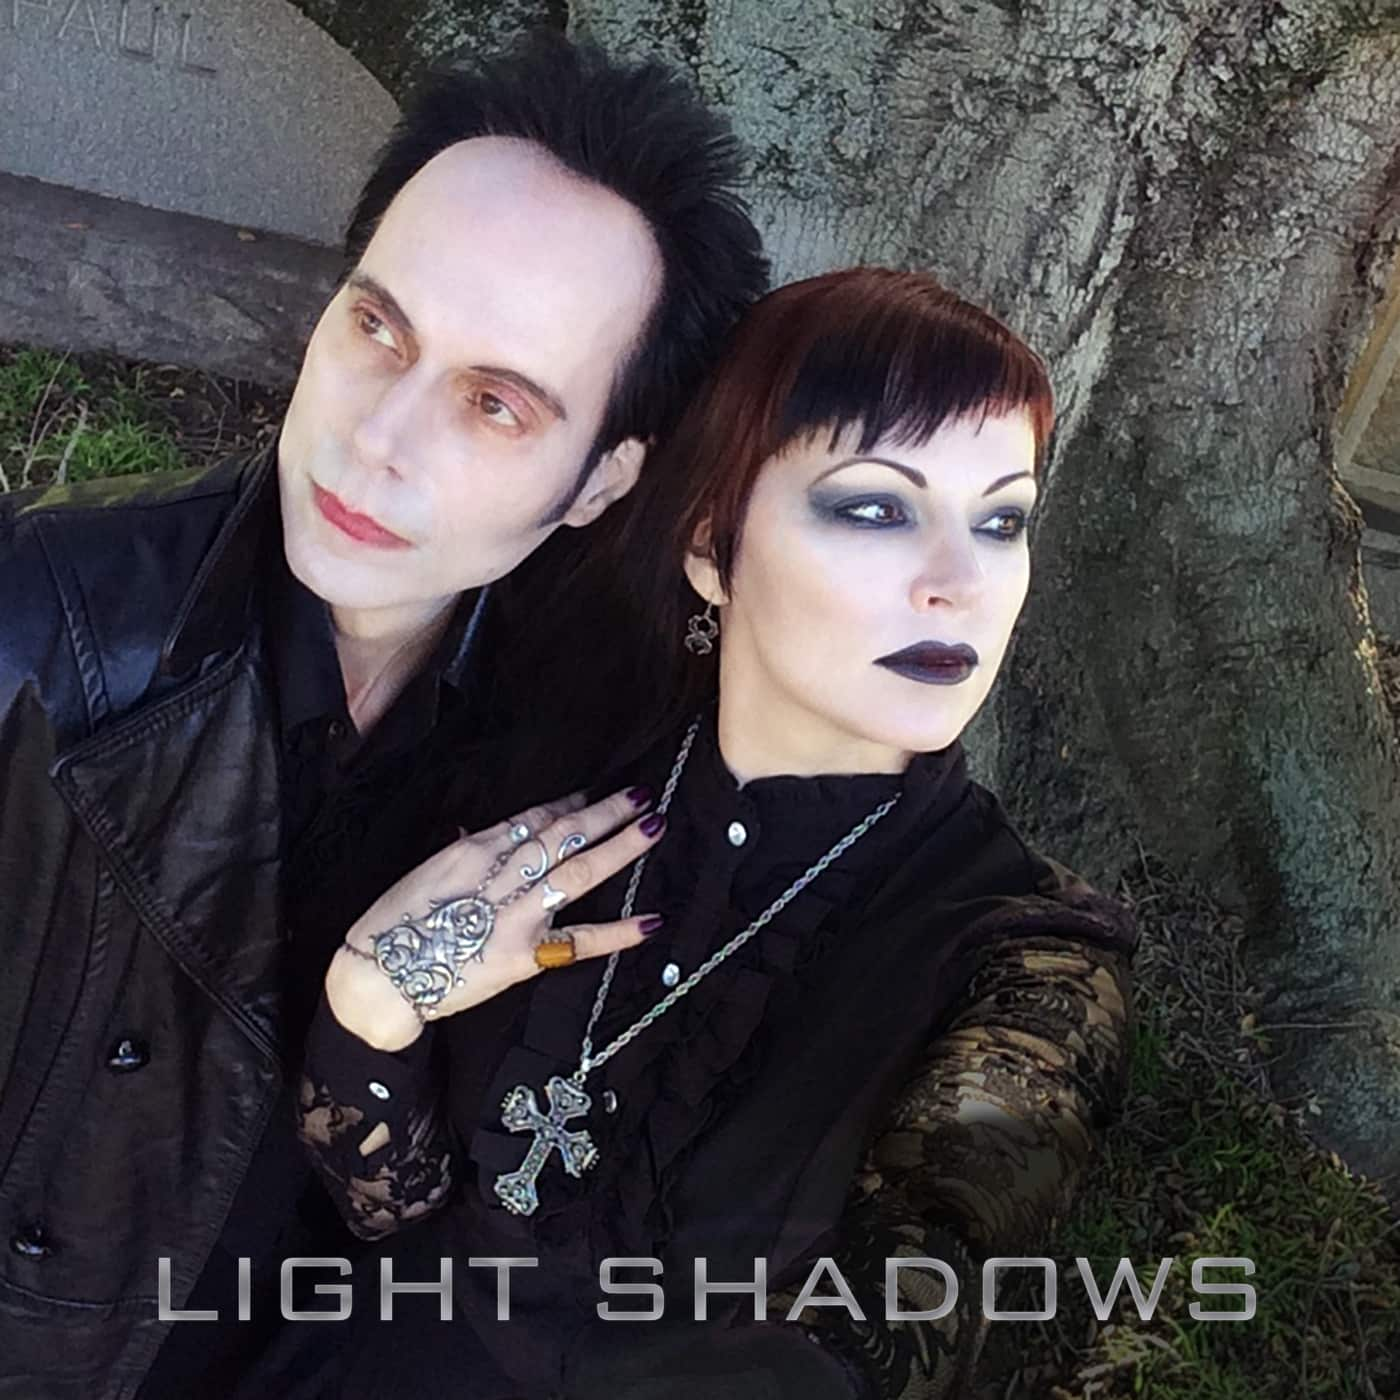 light shadows darkelectro duo